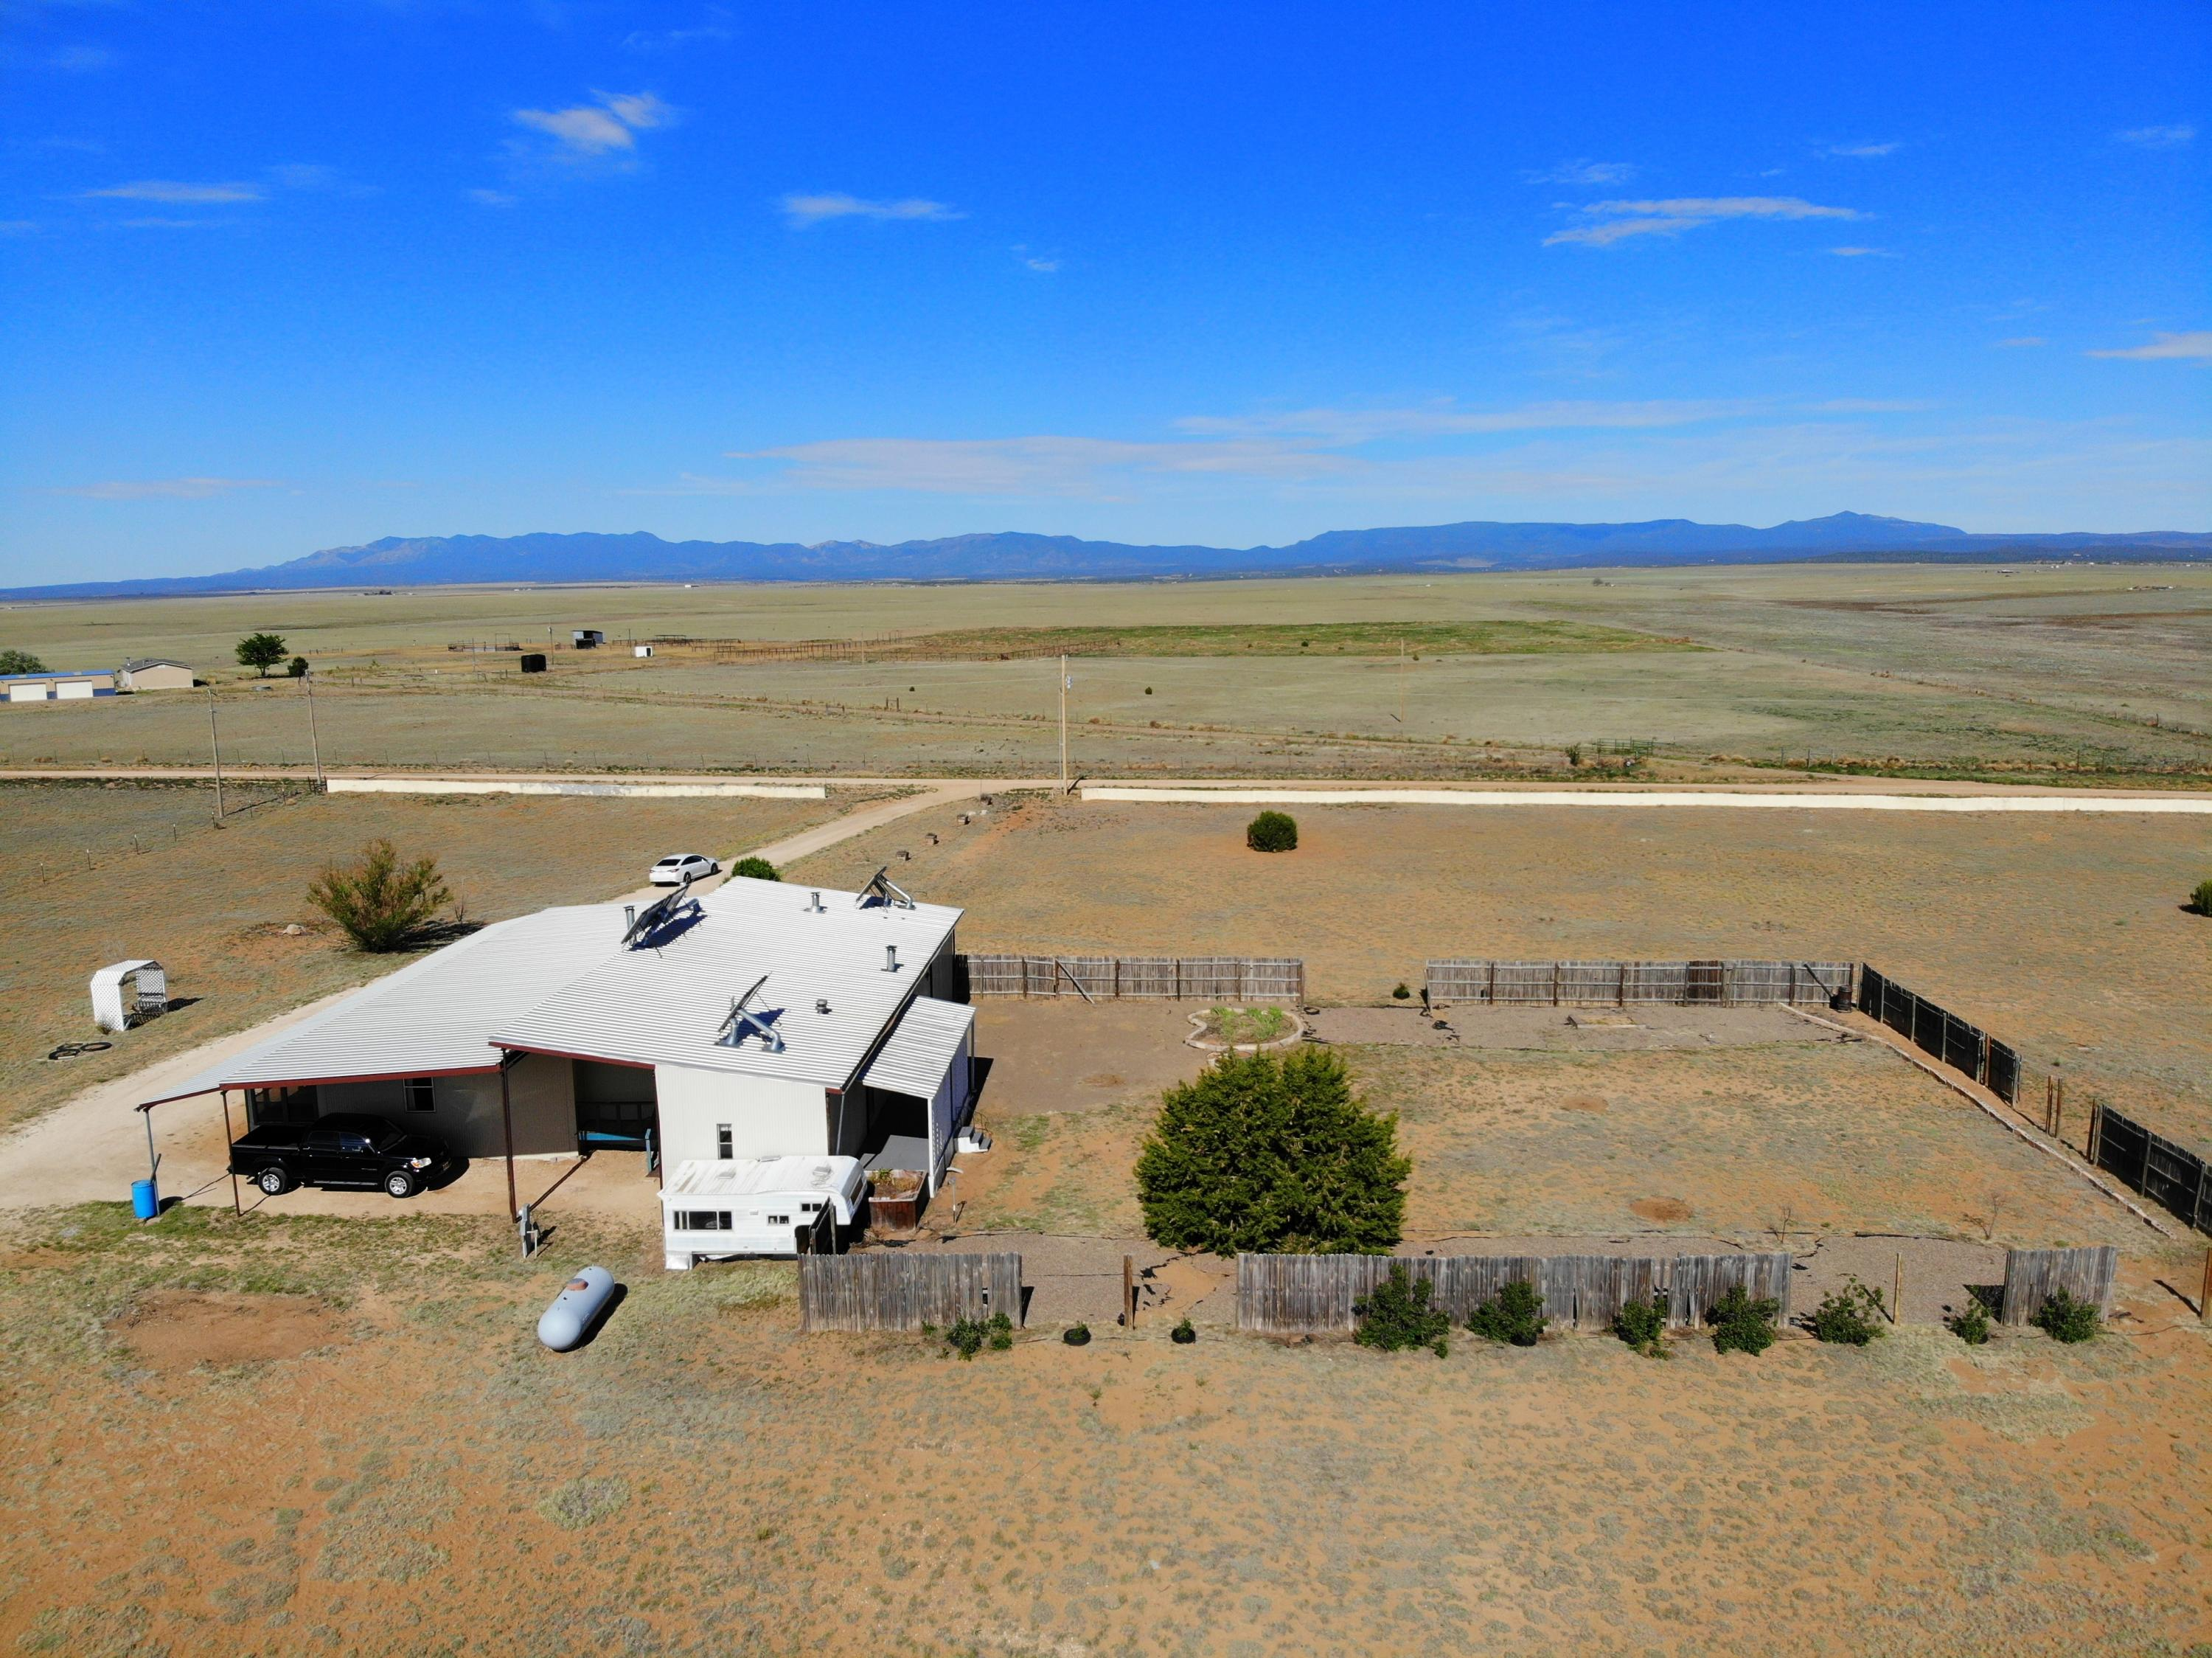 Come enjoy 69+ acres ready for your horses. .Large 60 by 100 ft metal pole barn with 14 stalls and hay storage. Separate shop with power. Large home with 5 bedrooms, 4 full baths, 3 living areas, 2 kitchens. This is two individual manufactured homes that have been enclosed with metal siding to become one structure. Roof is metal. Large carport is attached.